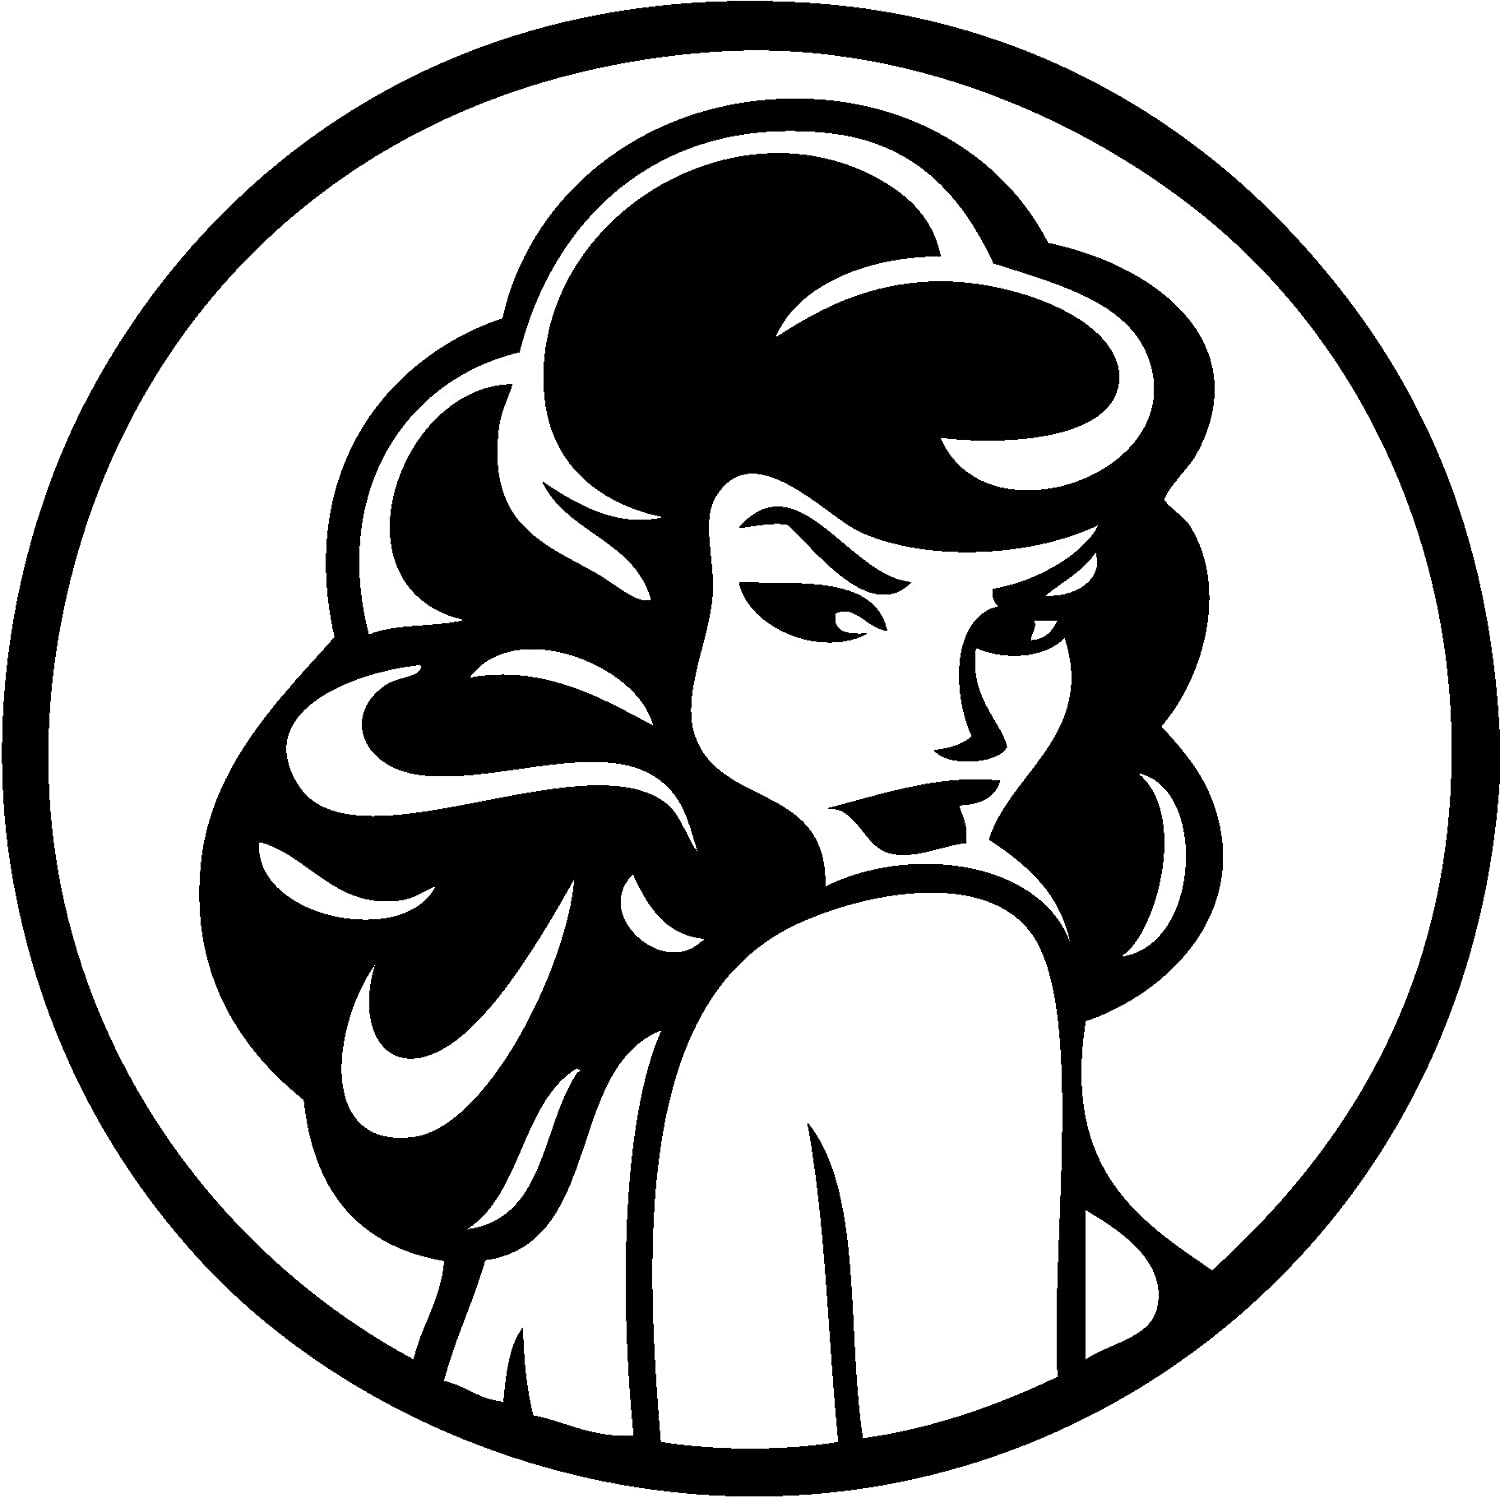 TDT Printing & Custom Decals Pin Up Vinyl Decal Sticker for Car or Truck Windows, Laptops etc.